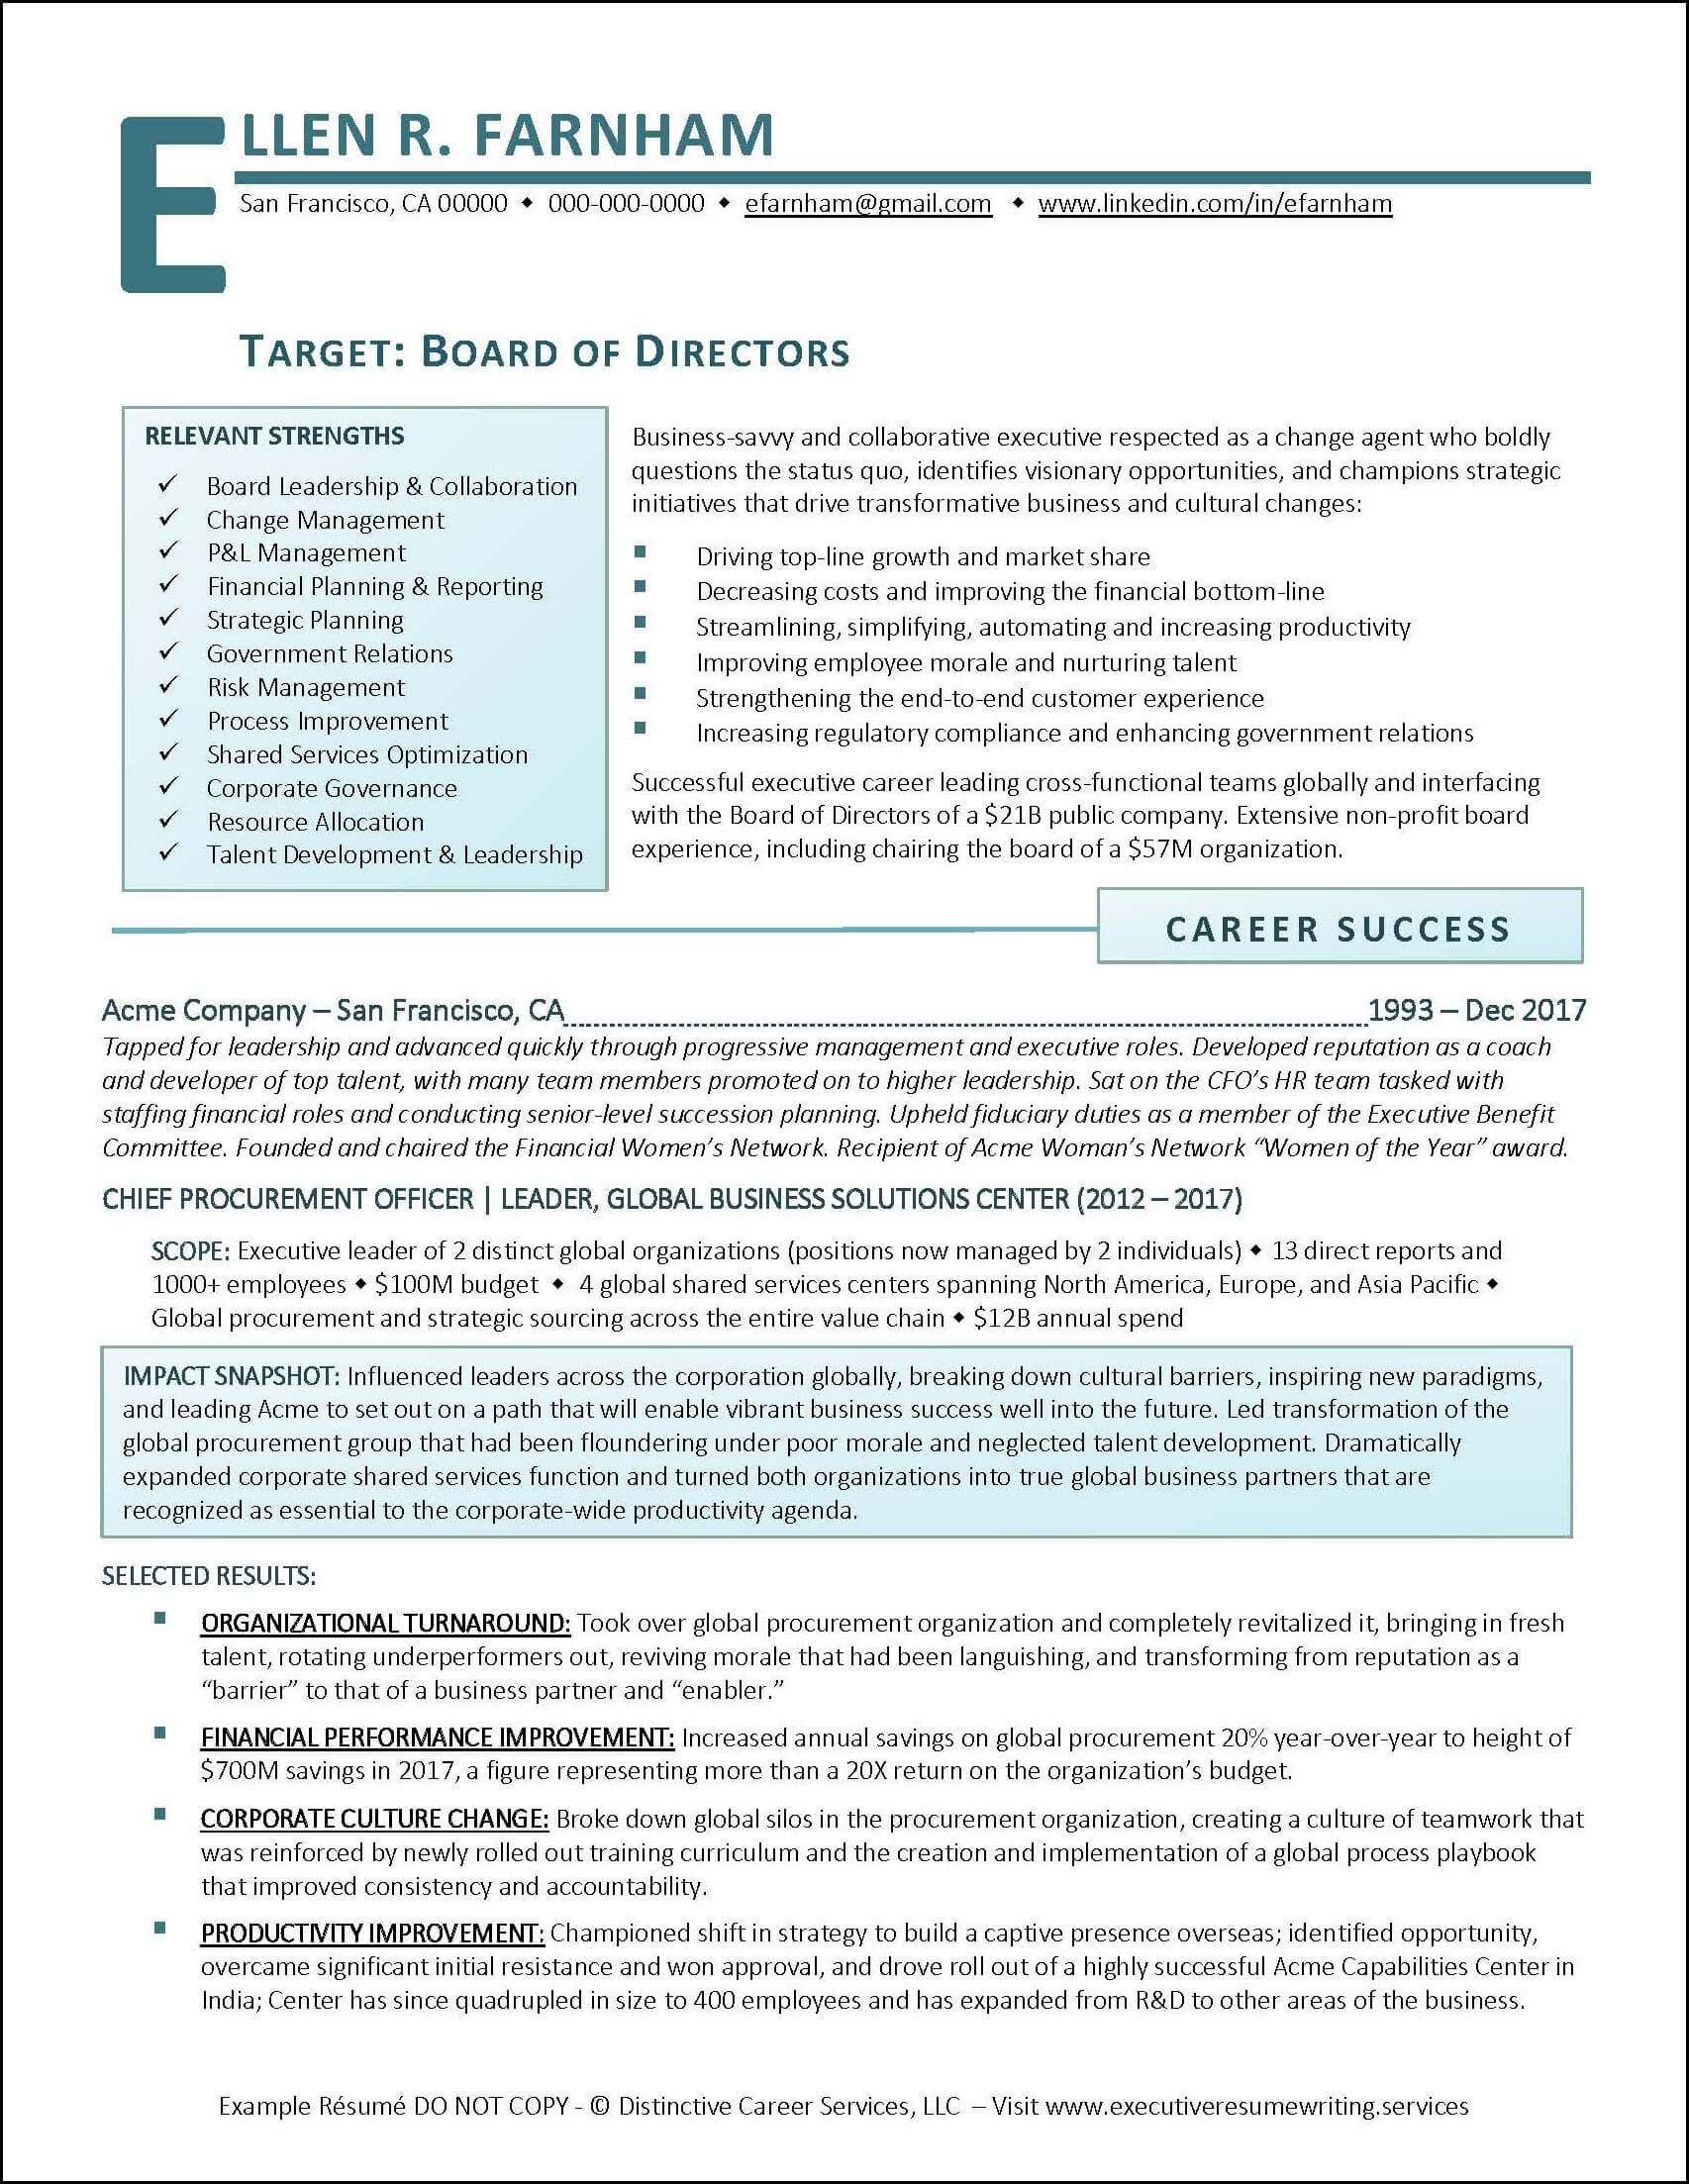 Example Board of Directors Resume pg 1